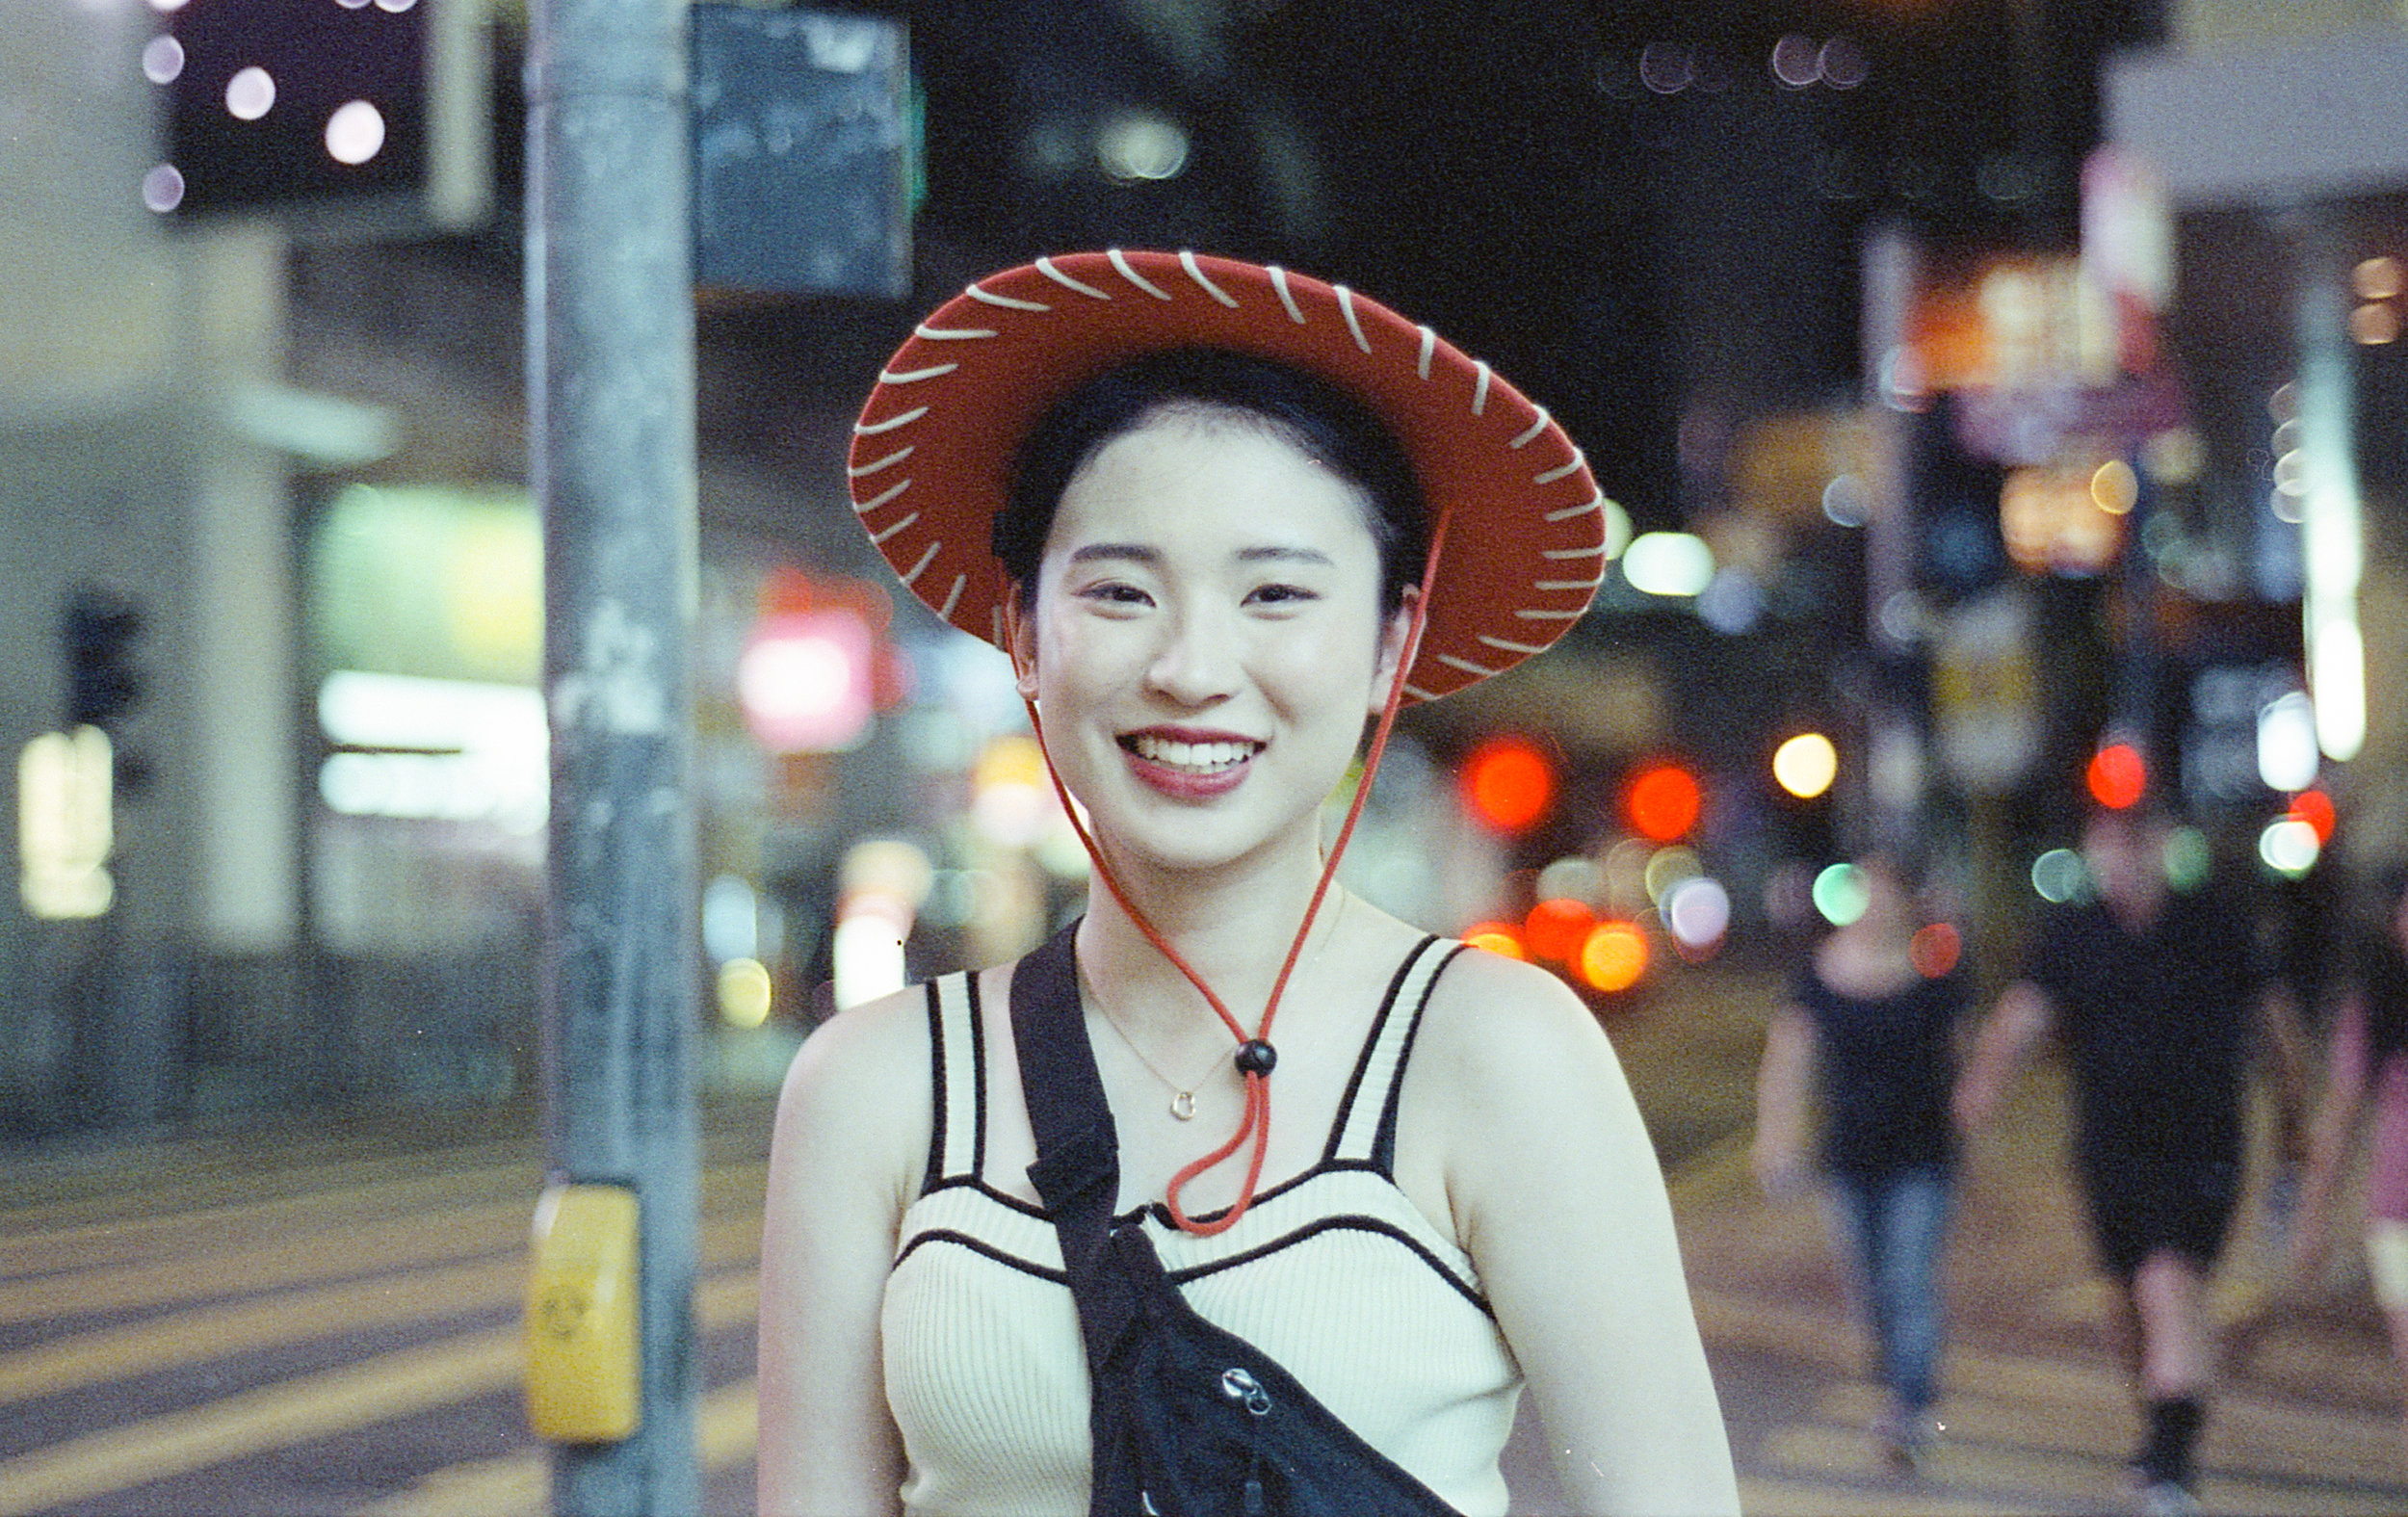 Shot on Cinestill 800T in Hong Kong. (I should have gotten her contact info... I am heart broken and dumb.)